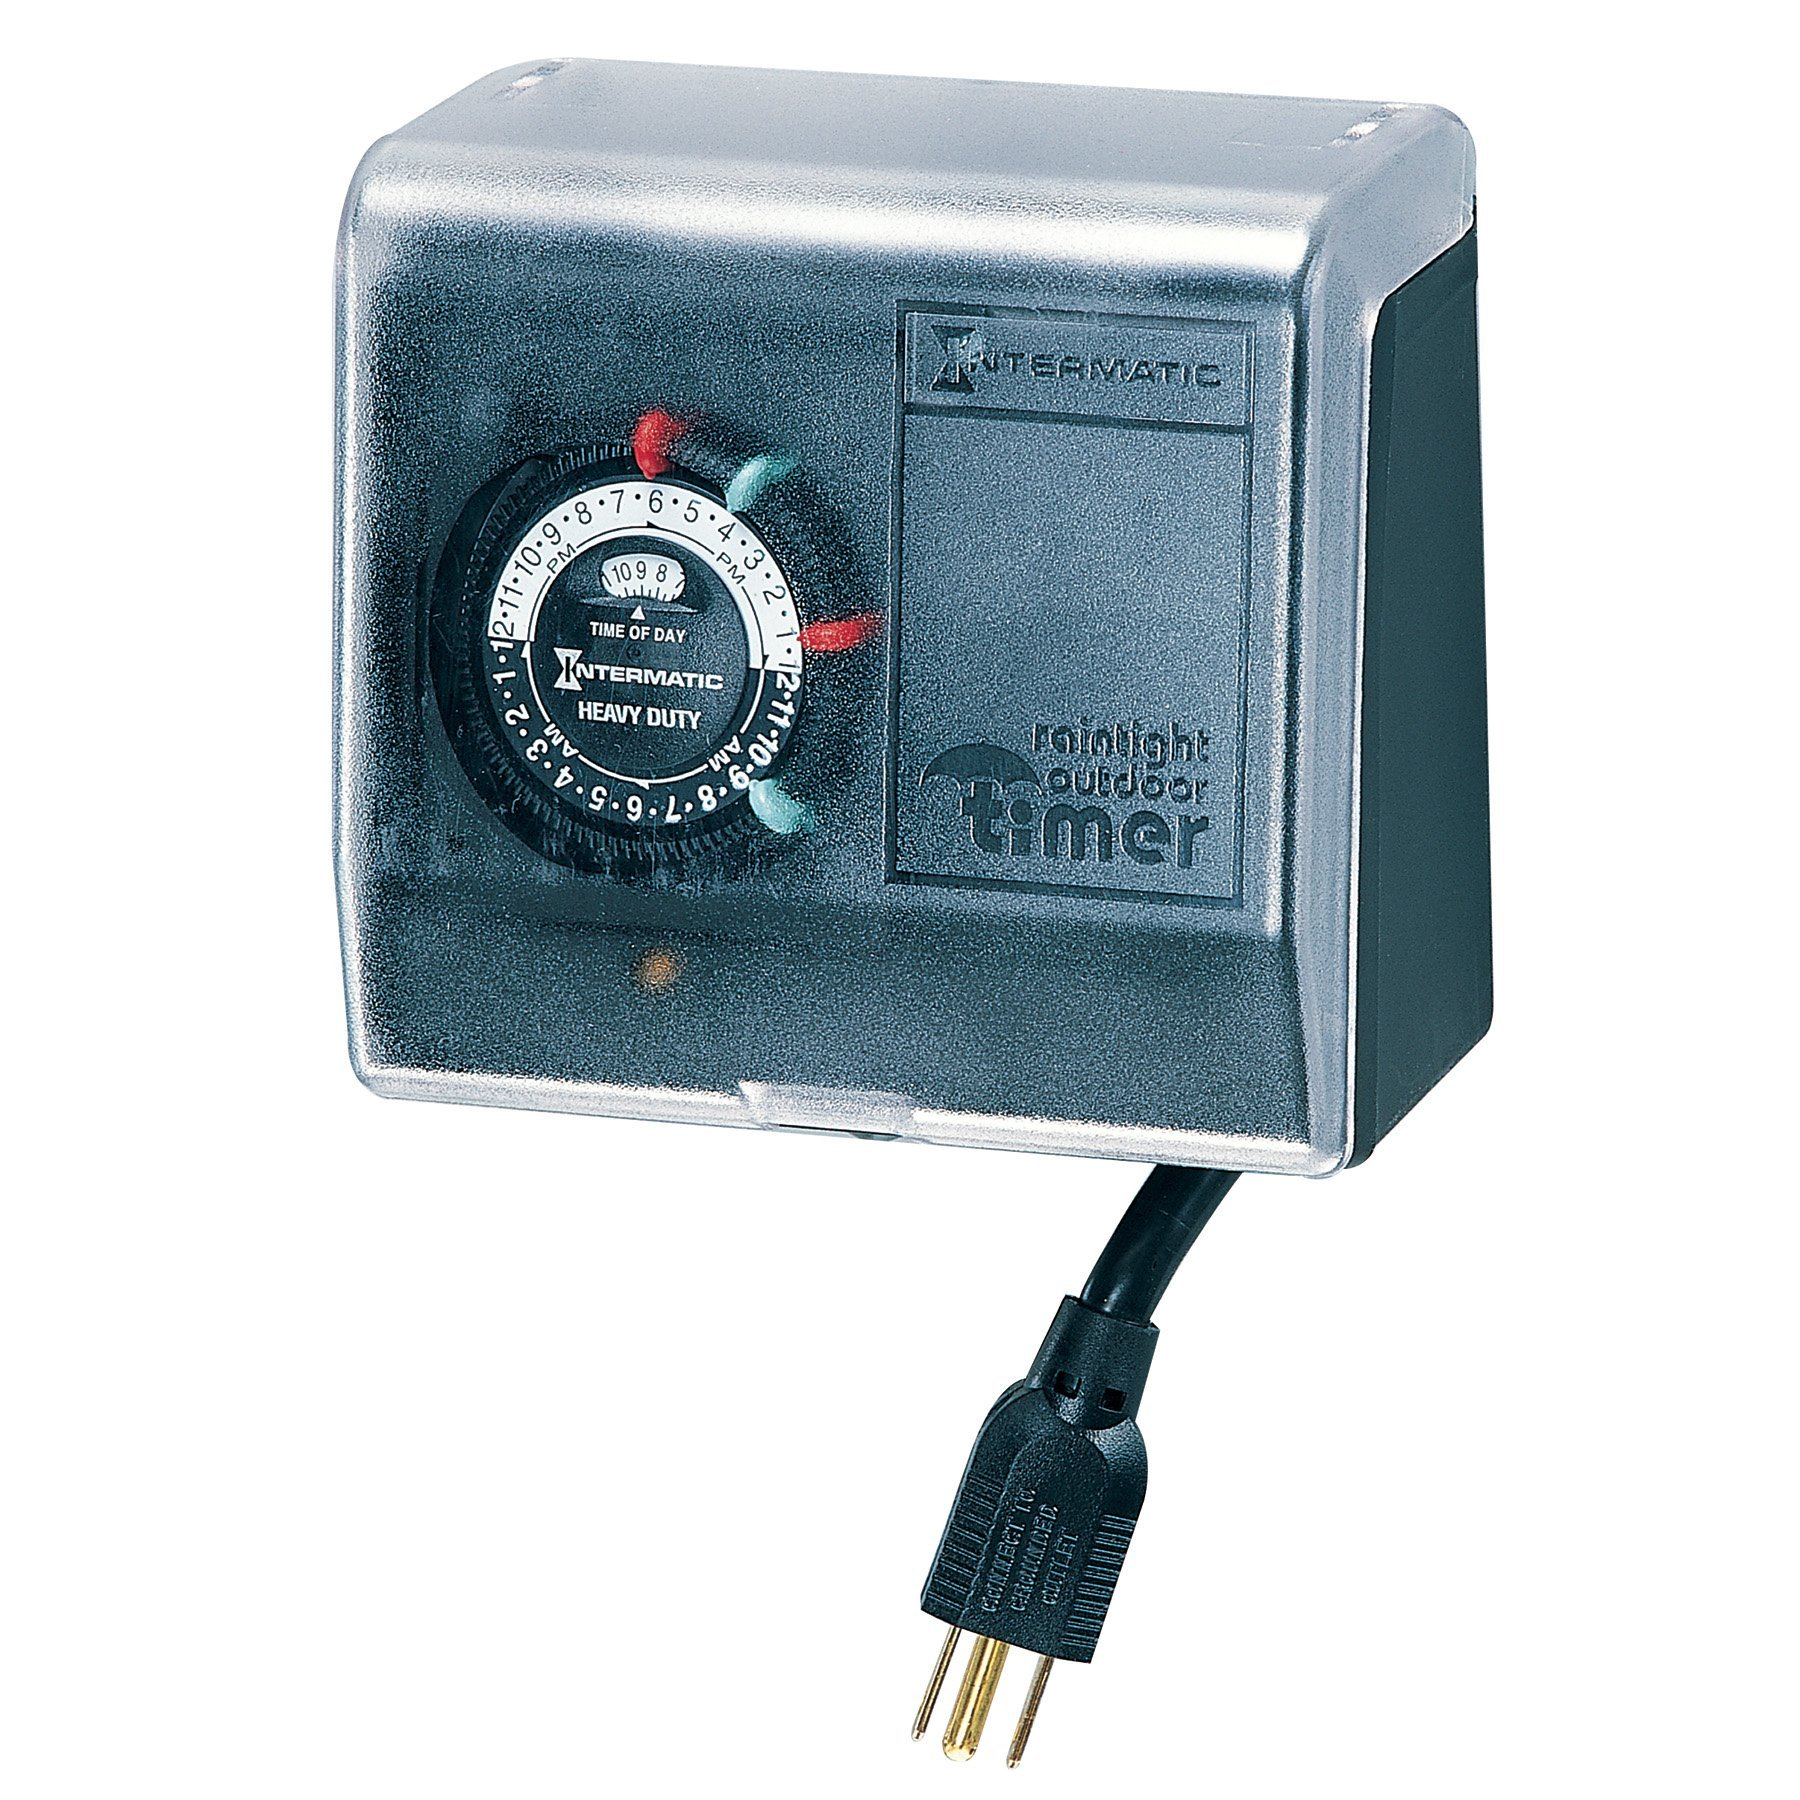 Intermatic P1101 15 Amps Outdoor Pool Timer (Renewed) by Intermatic